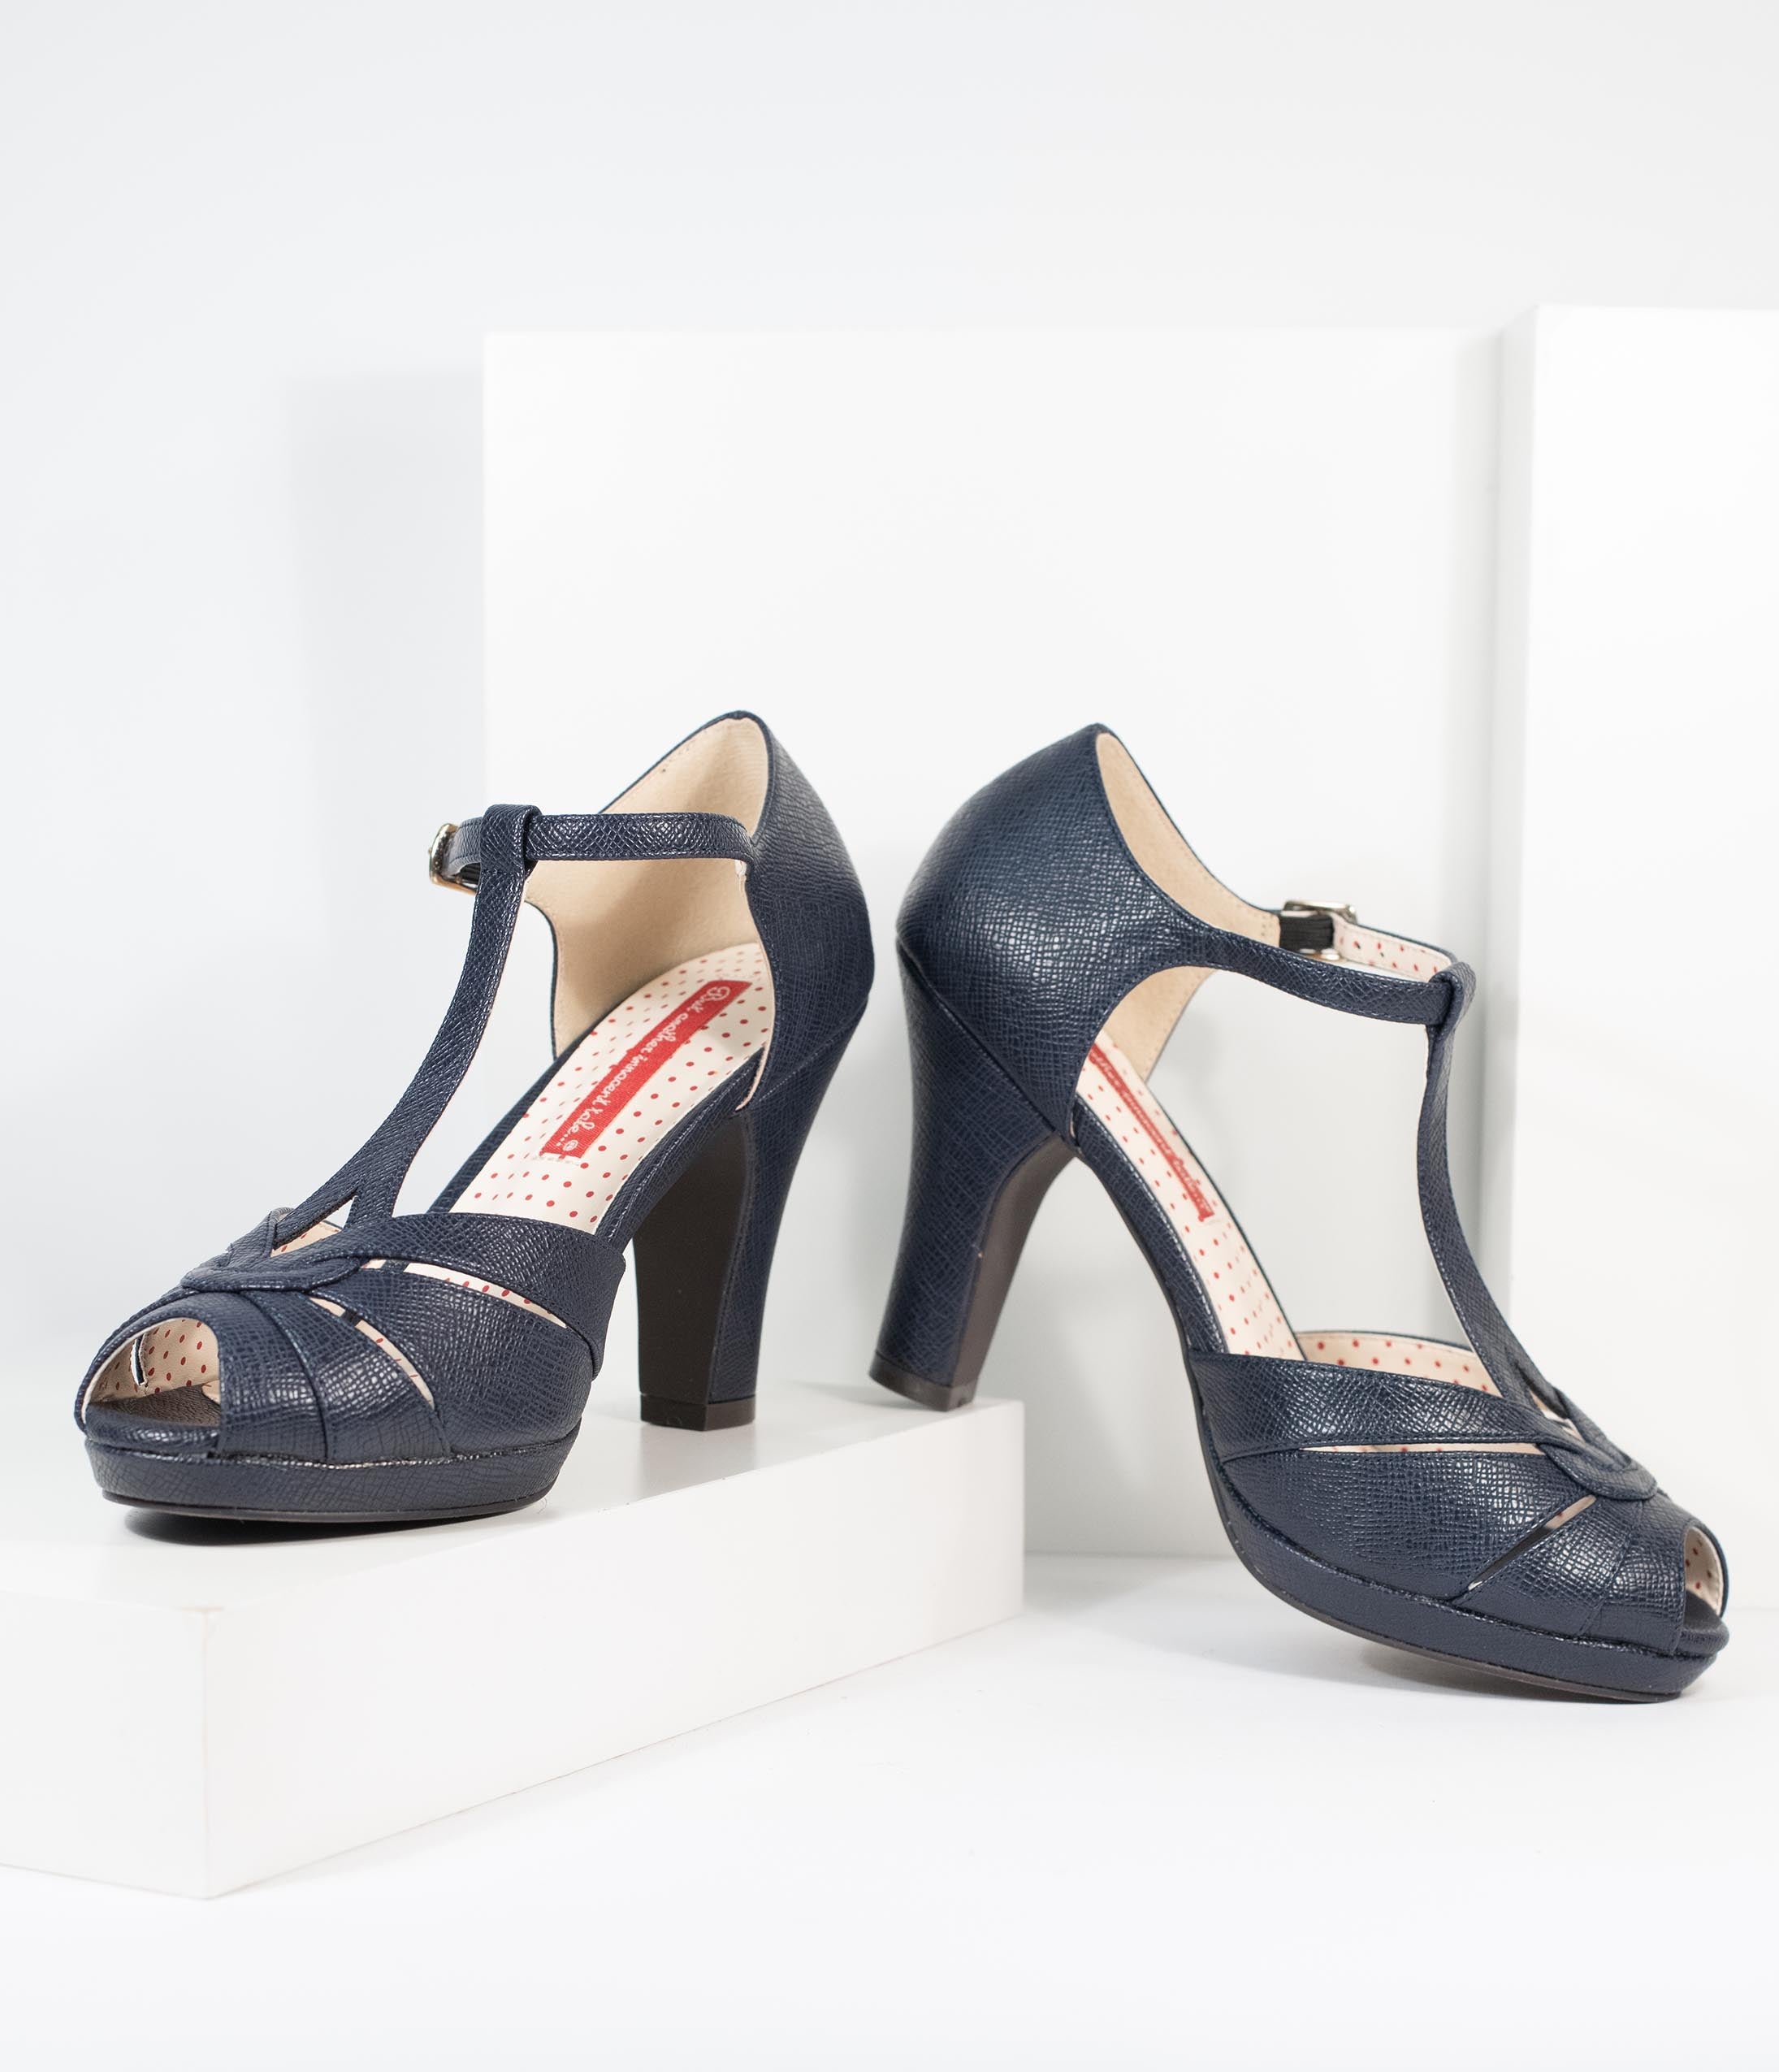 Vintage Heels, Retro Heels, Pumps, Shoes B.a.i.t. Navy Blue Textured Leatherette T-Strap Lacey Heels $80.00 AT vintagedancer.com